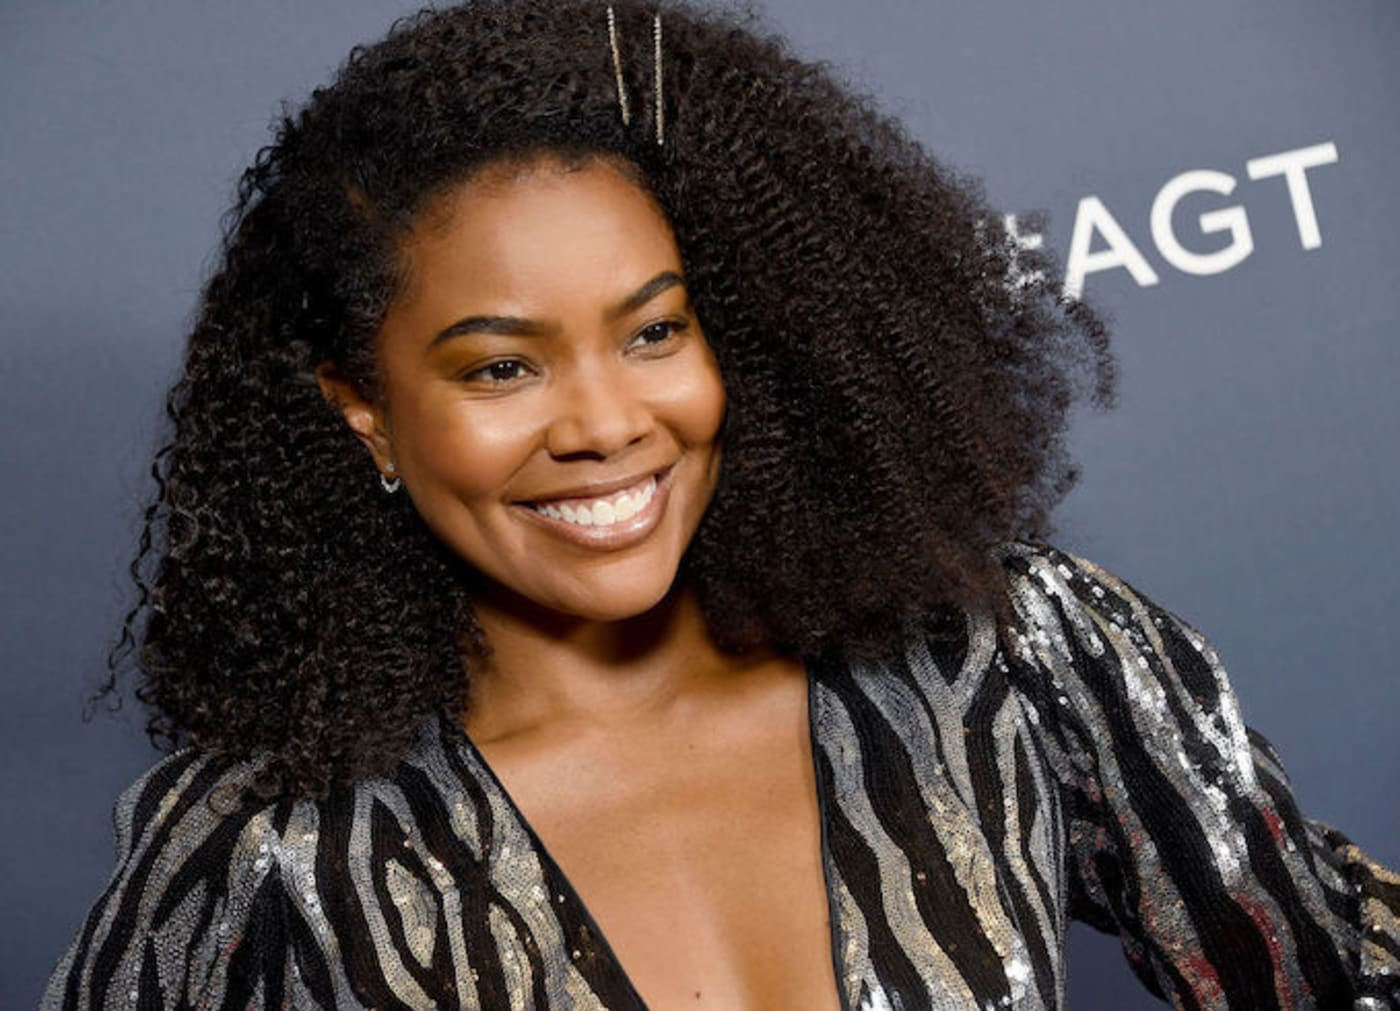 This is a picture of Gabrielle Union.